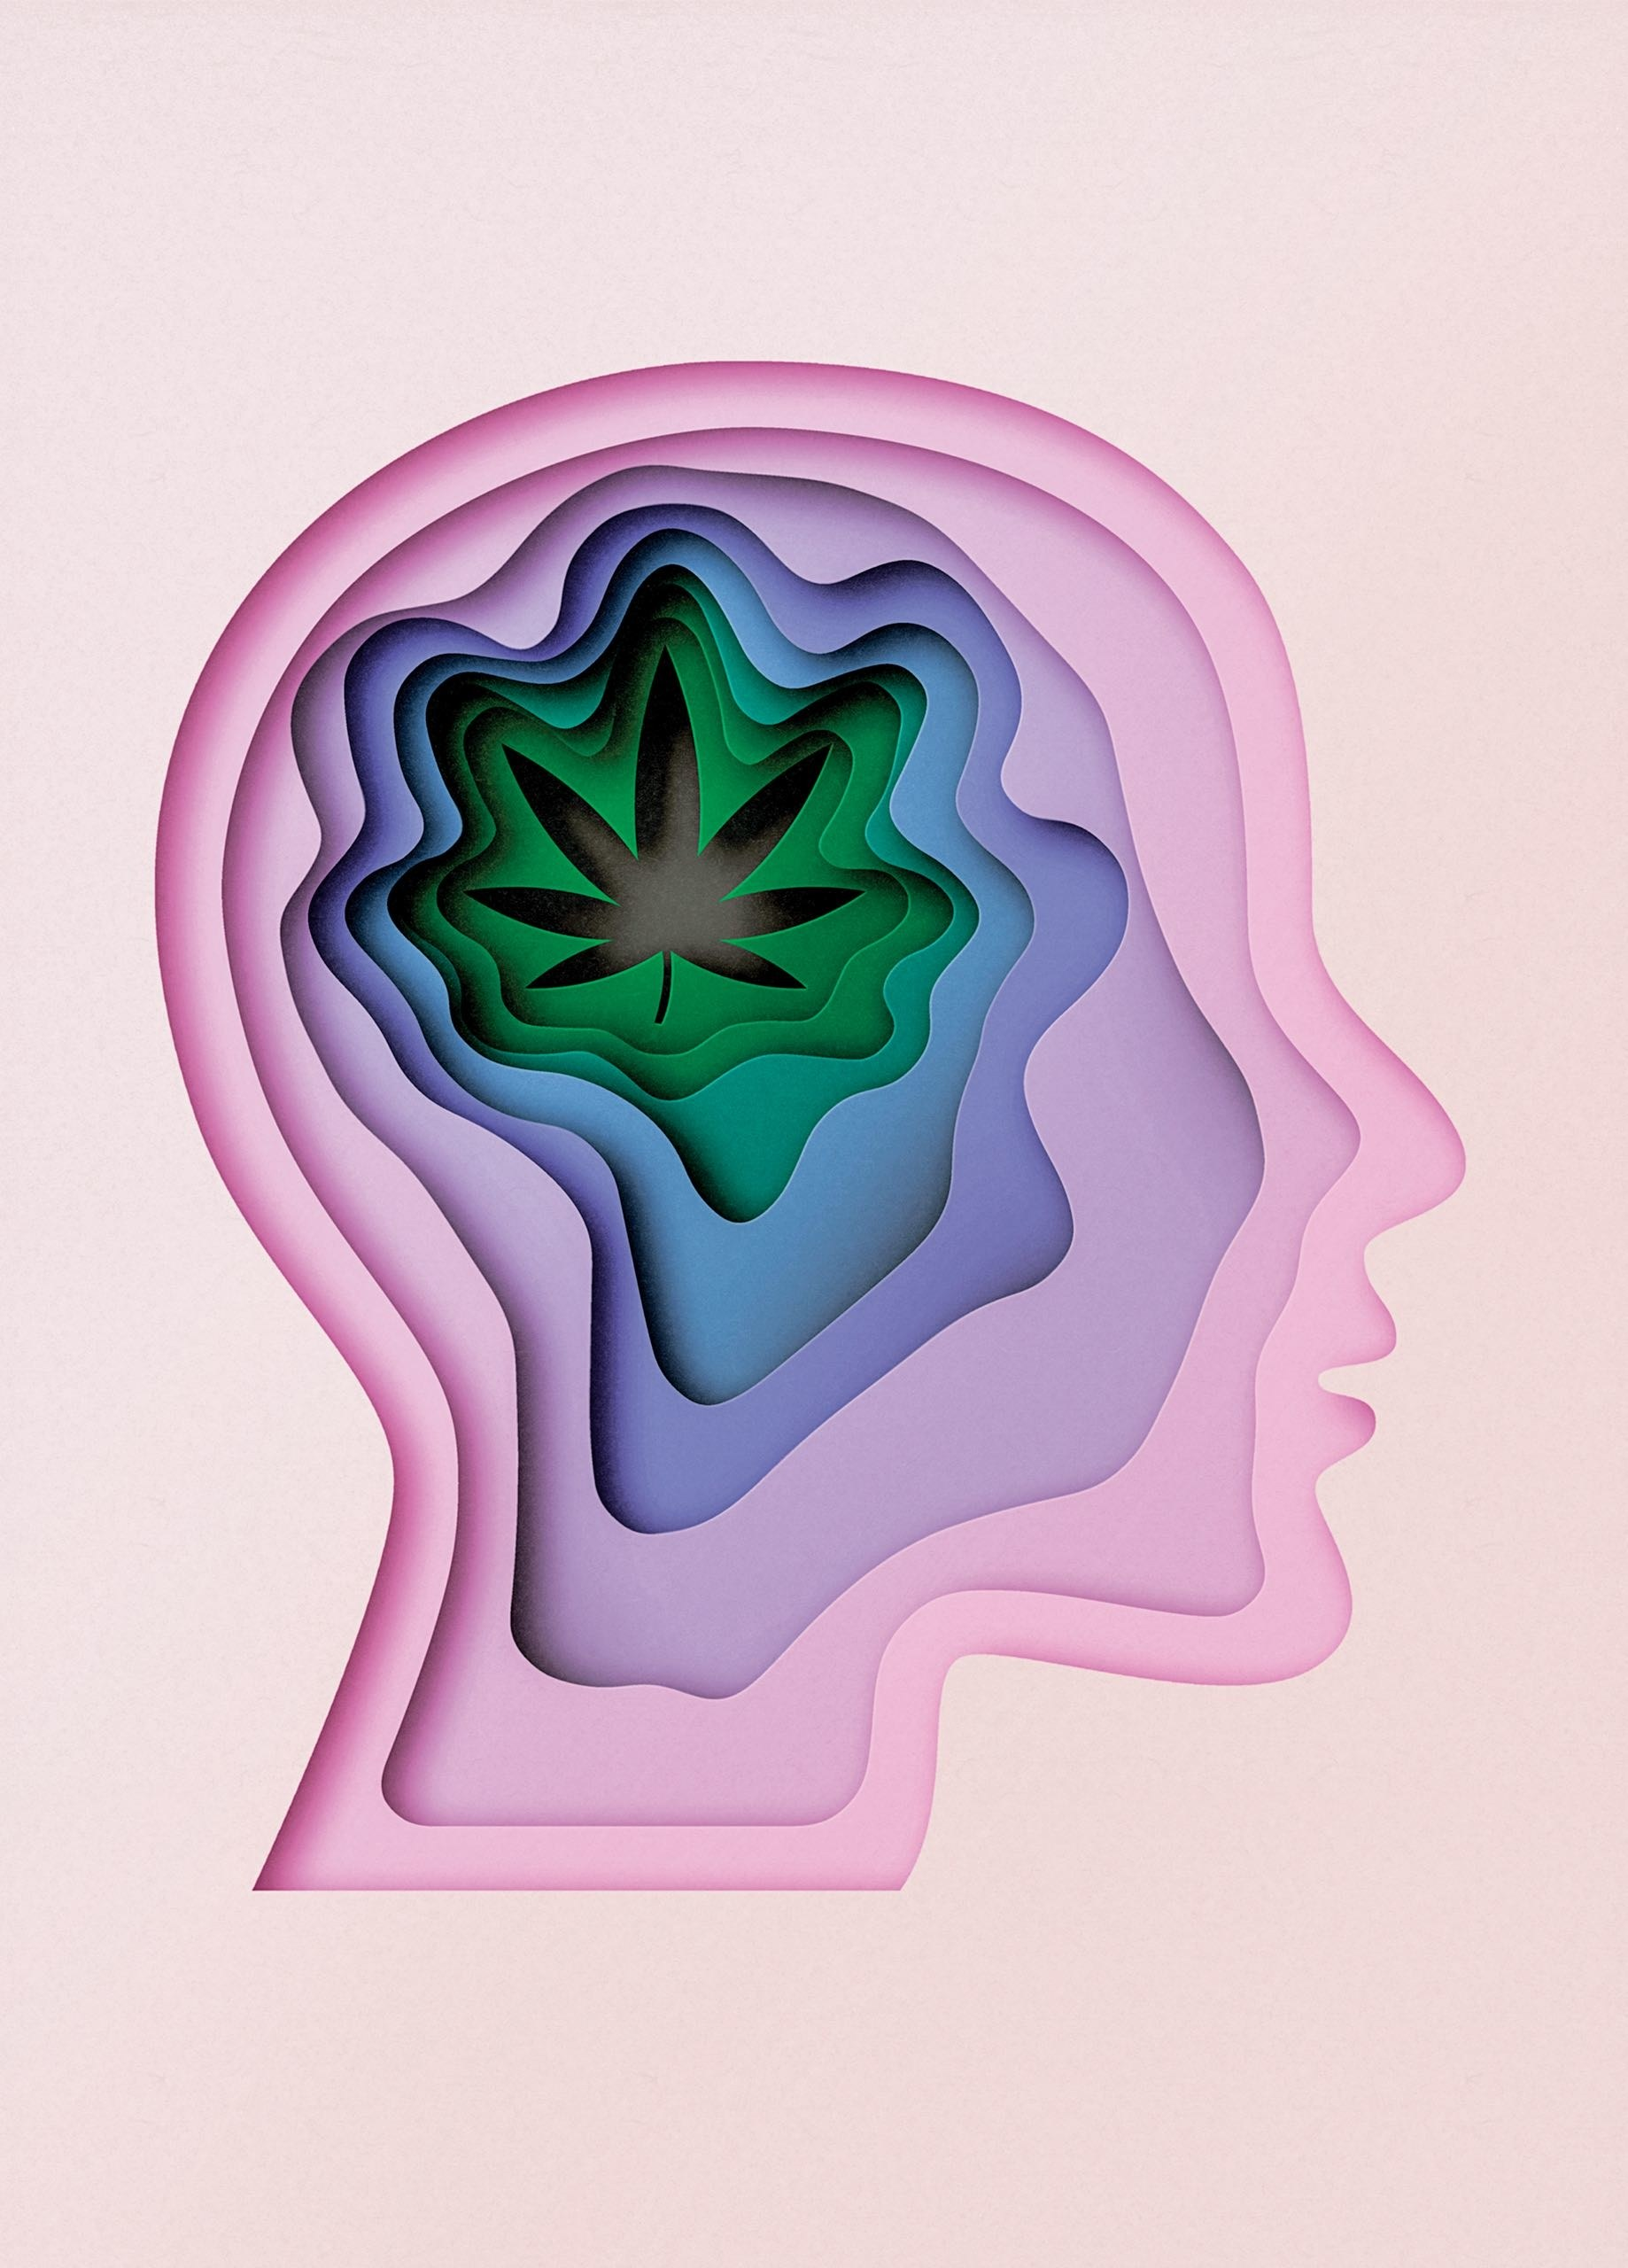 Short-Term Effects Of Marijuana On The Brain